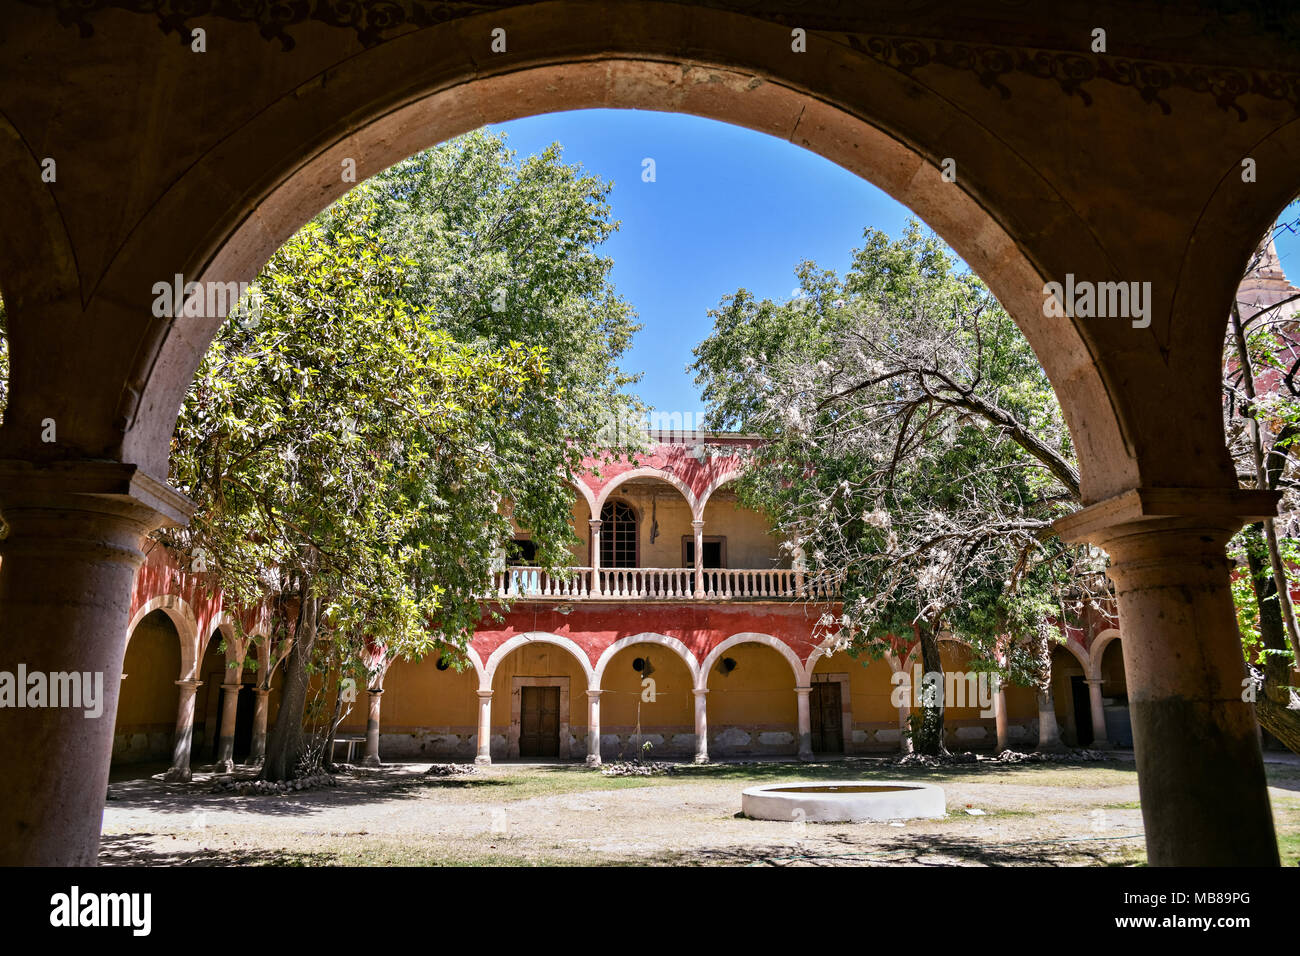 The Iglesia de San Diego De Alcalá as seen from the entry to the Hacienda de Jaral de Berrio in Jaral de Berrios, Guanajuato, Mexico. The abandoned Jaral de Berrio hacienda was once the largest in Mexico and housed over 6,000 people on the property. - Stock Image